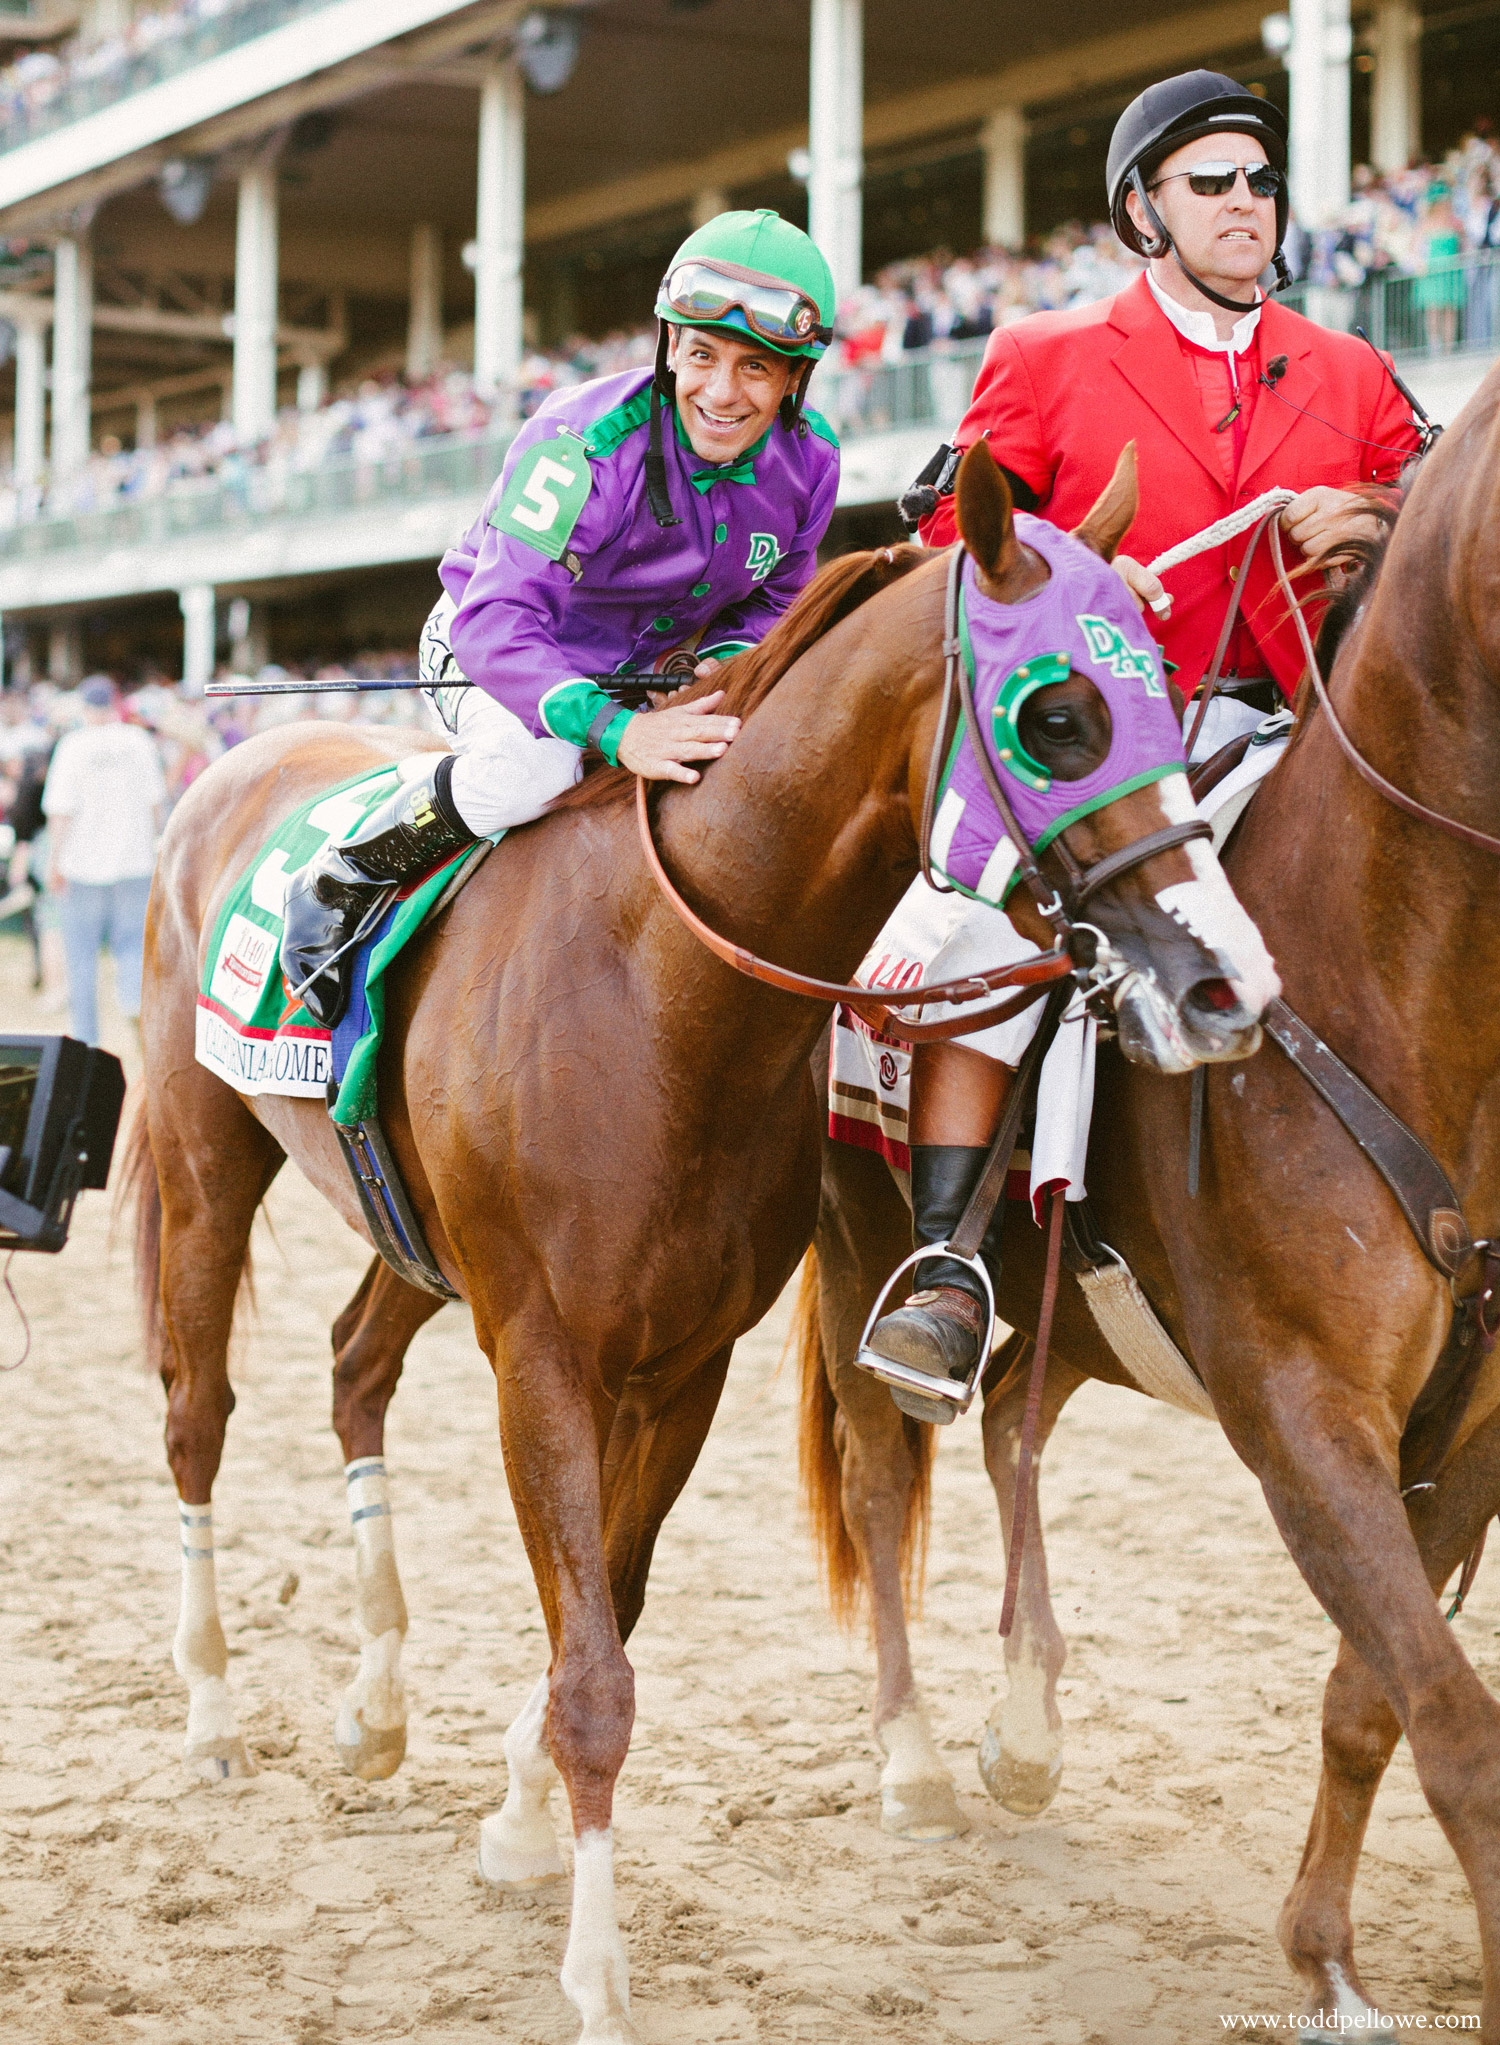 Victor Espinoza after winning the Kentucky Derby